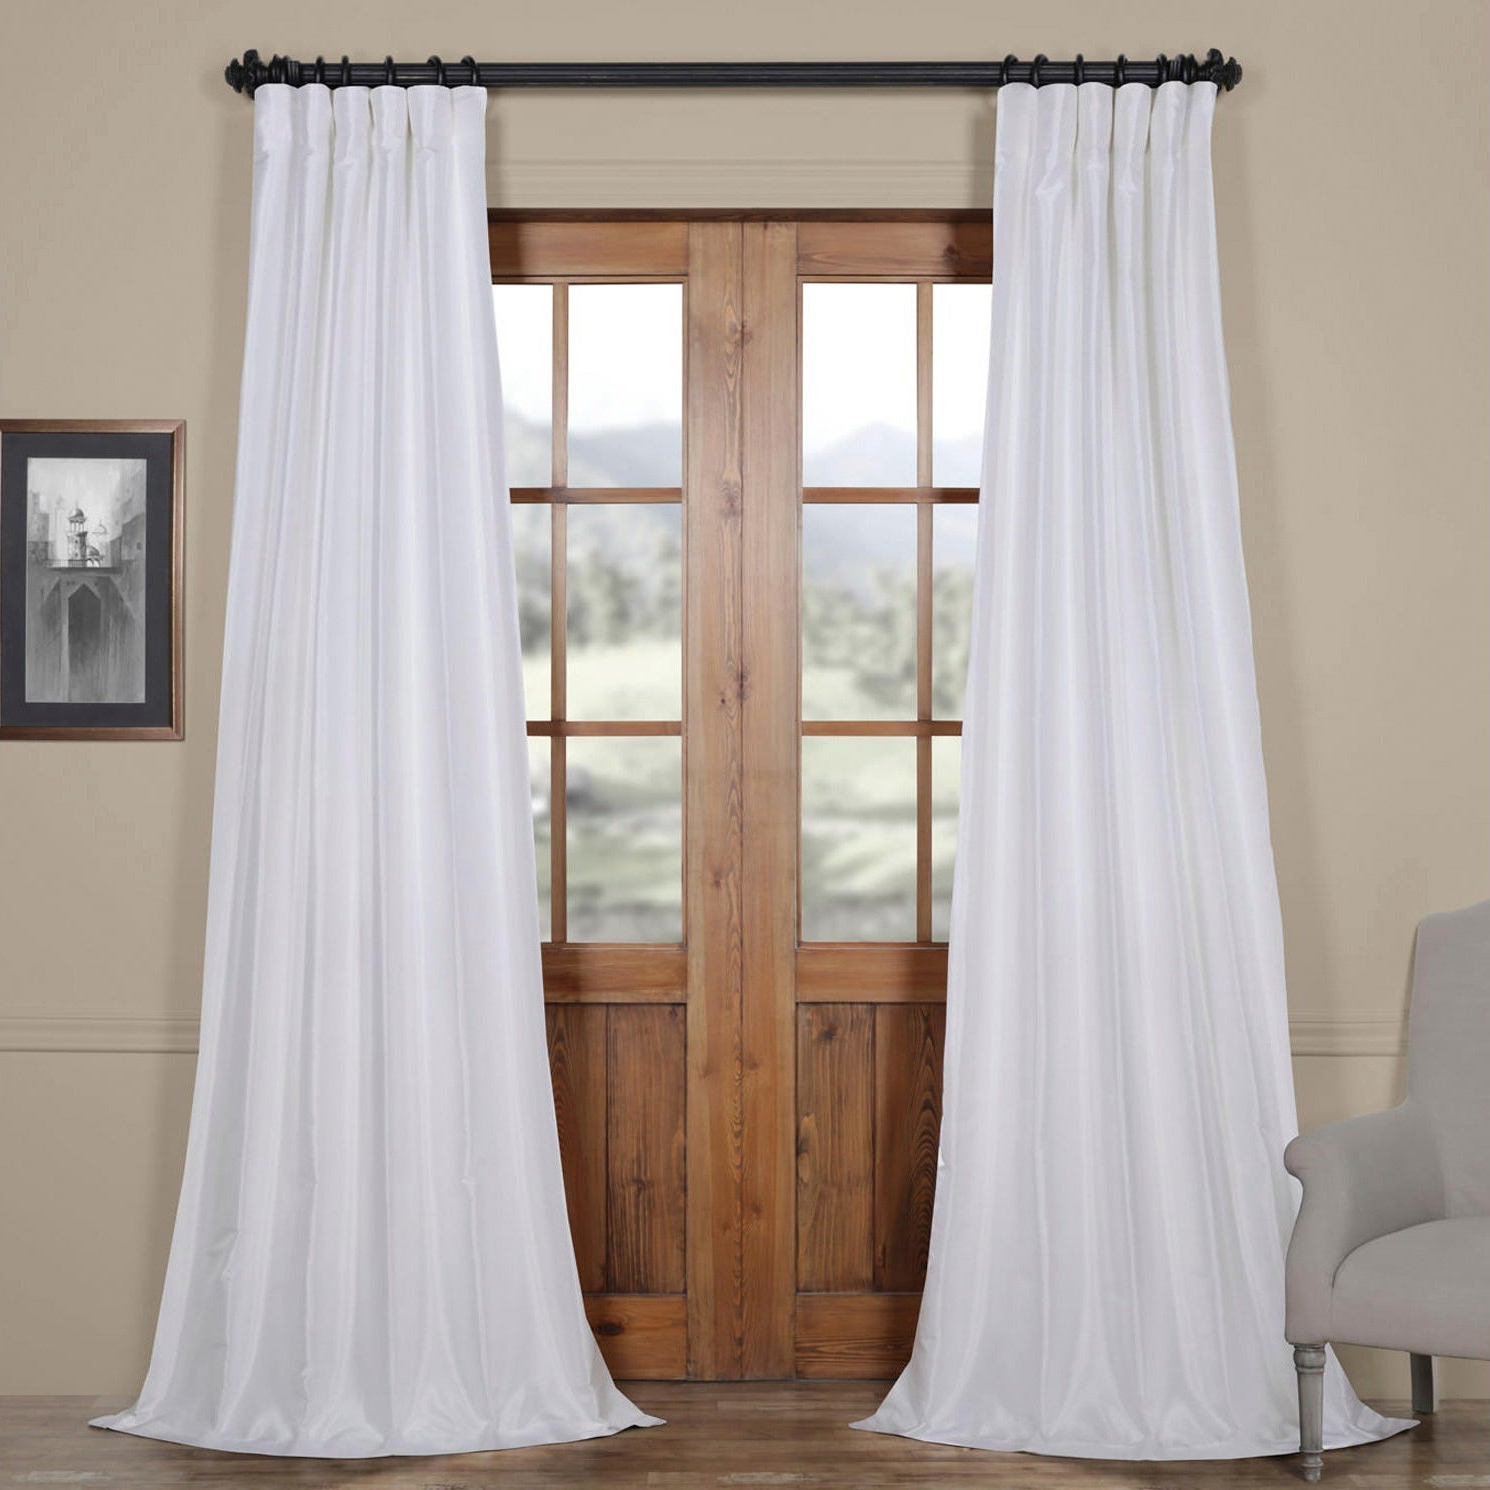 Famous Ice White Vintage Faux Textured Dupioni Silk 108L Curtain Panel With Regard To Off White Vintage Faux Textured Silk Curtains (View 10 of 20)